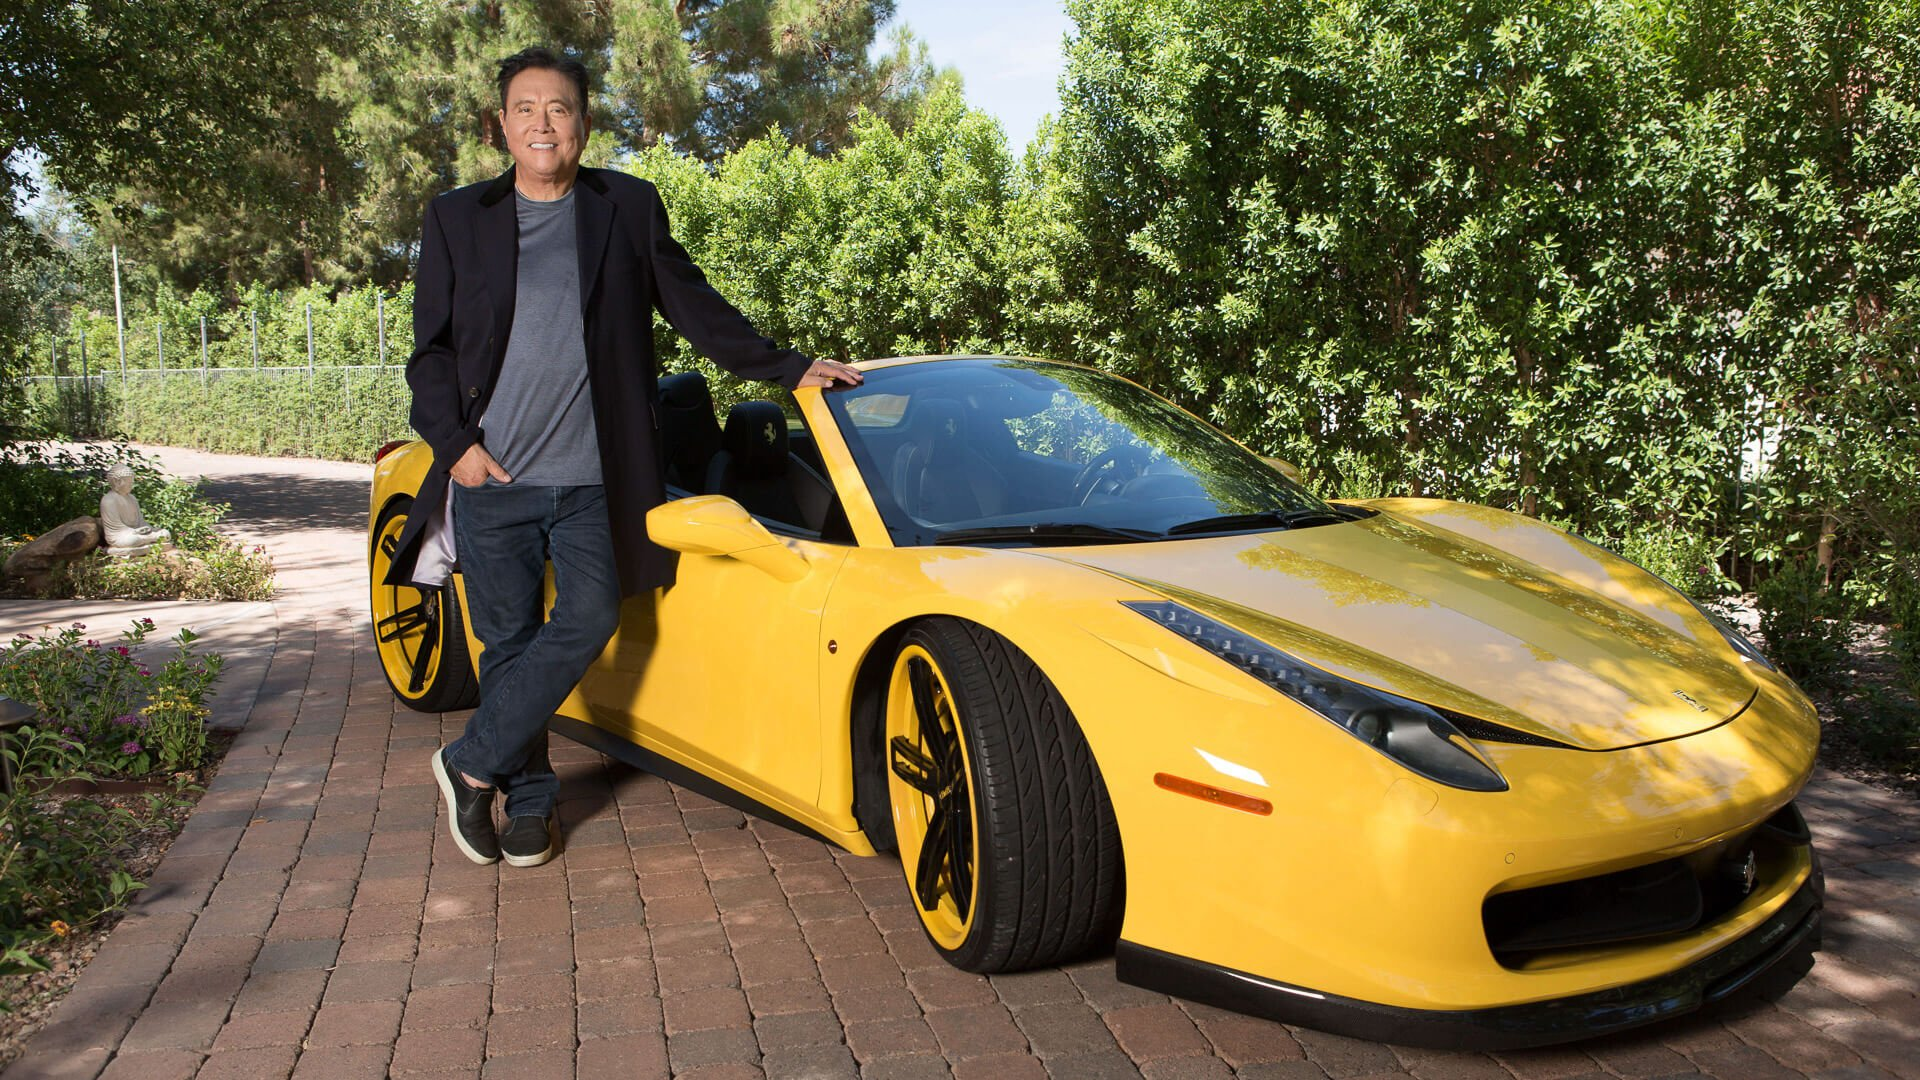 'Rich Dad Poor Dad' Author Robert Kiyosaki: You Should Never Say 'I Can't Afford That'